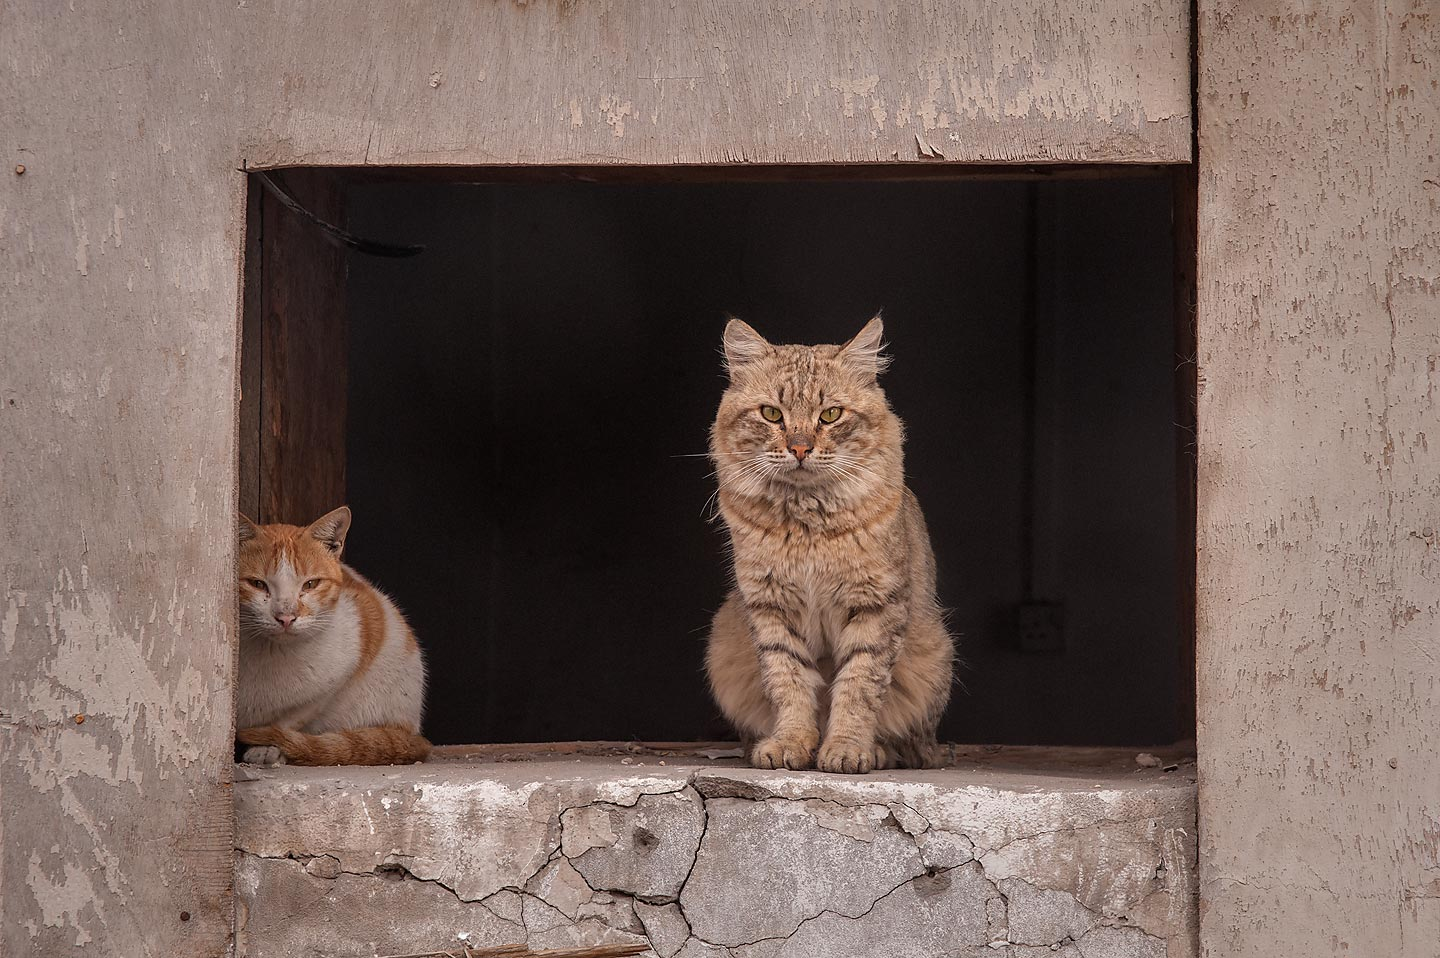 Two cats in a window at Zurara Bin Amir St. in Al...Al Jadeeda neighborhood. Doha, Qatar